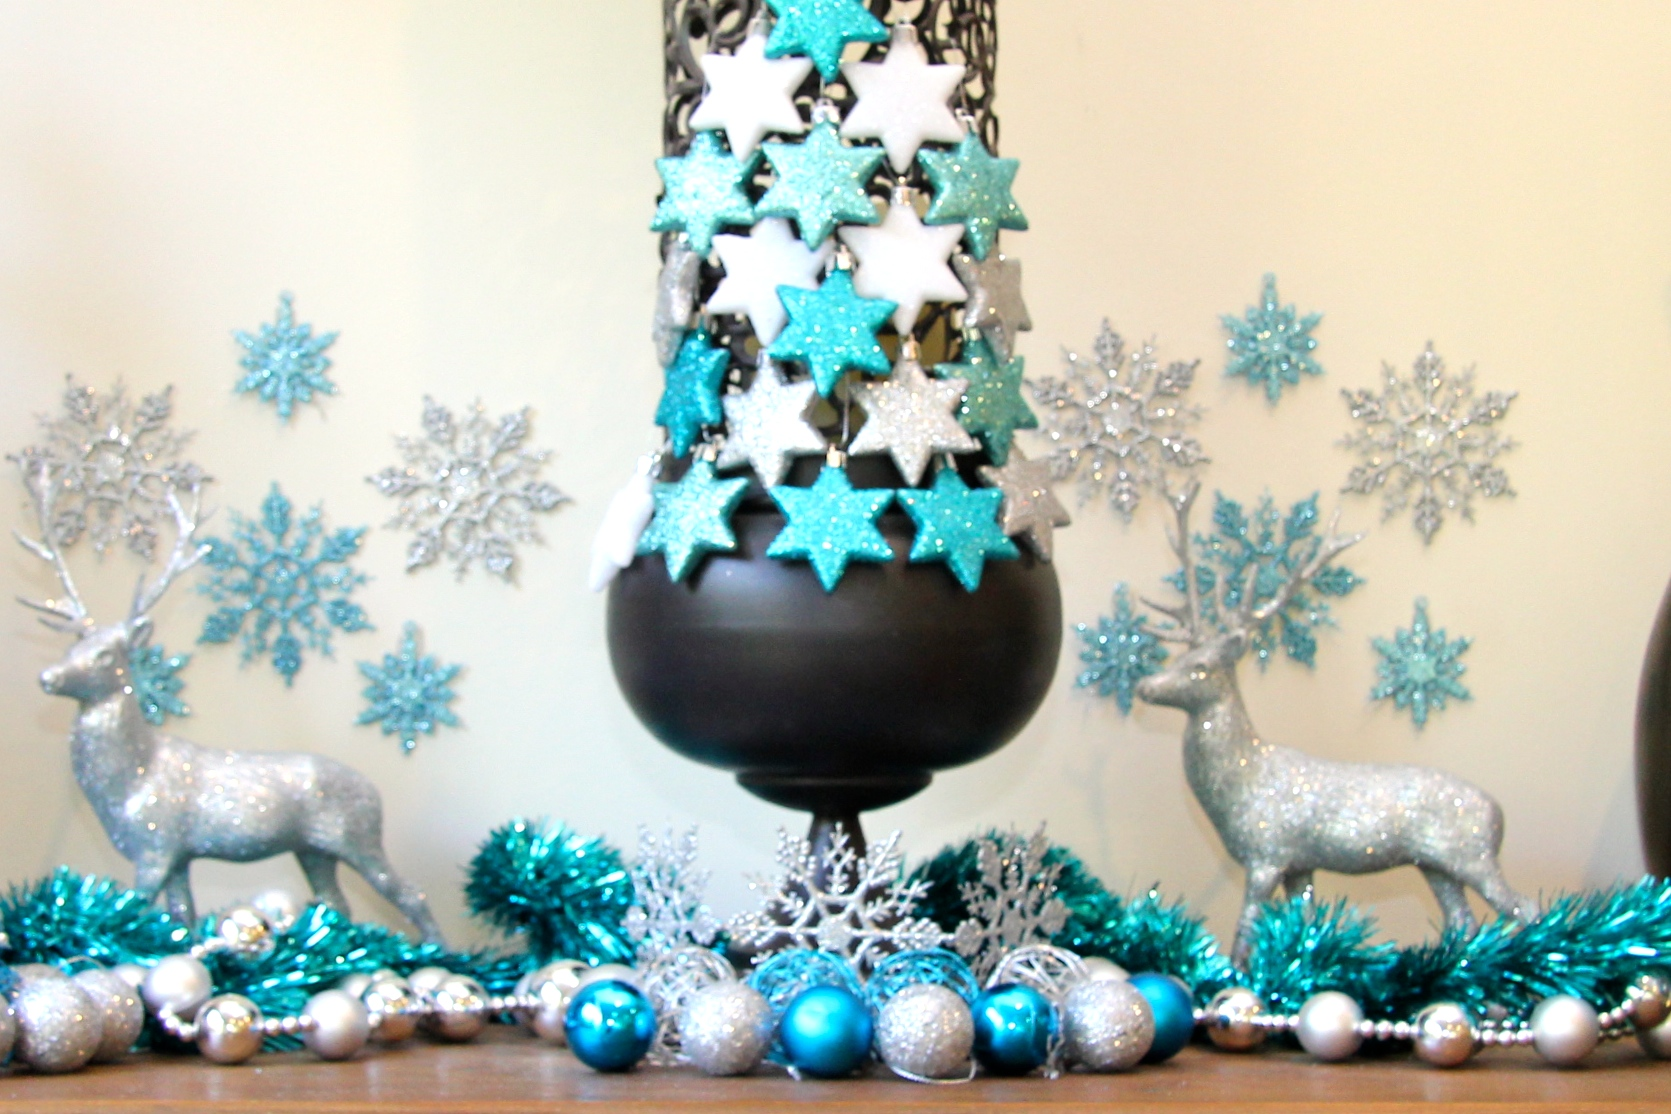 Dress a Candle holder with Christmas Cheer